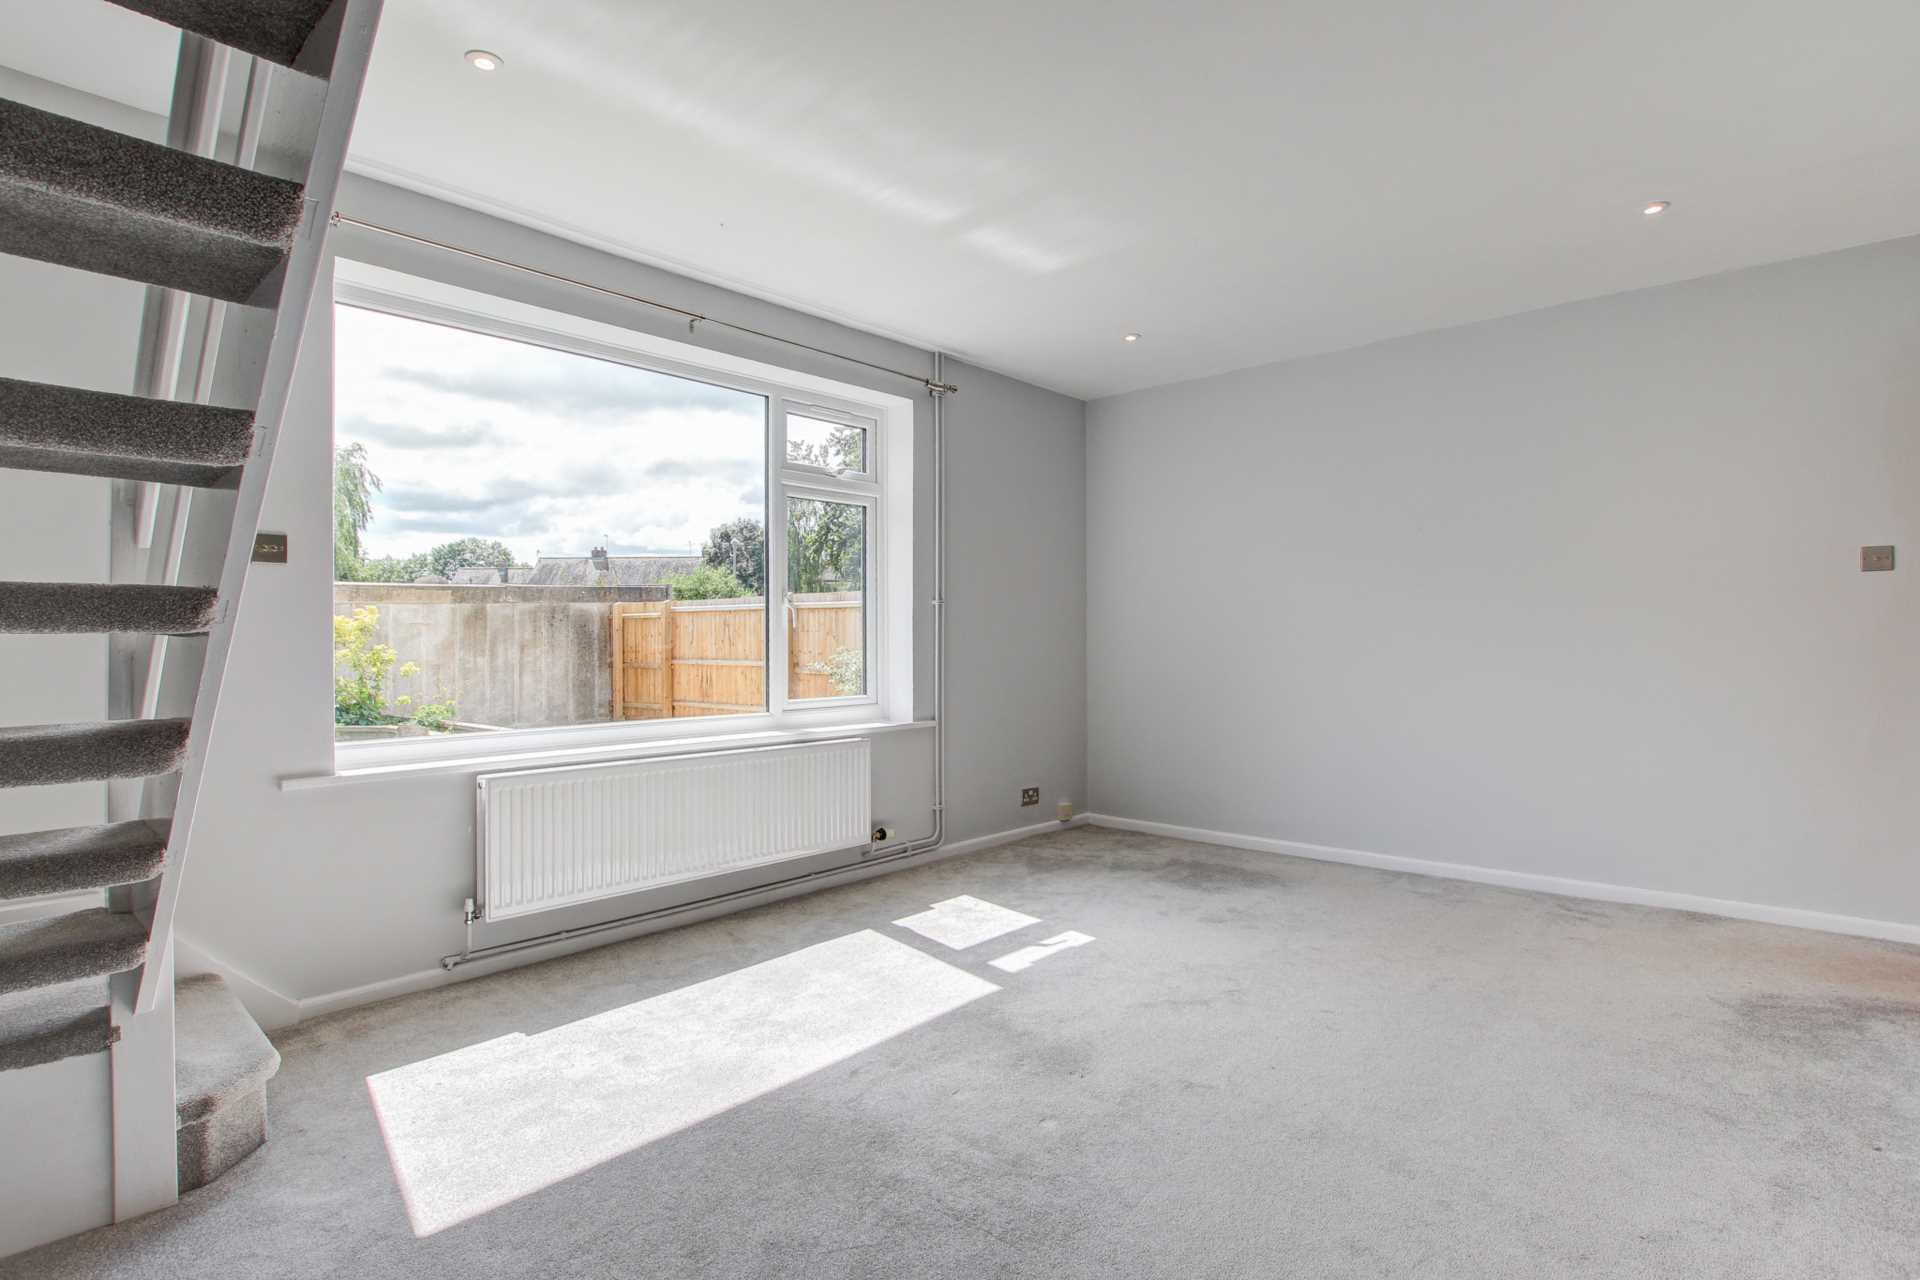 2 bed end of terrace house to rent in Fishers Close, Blandford Forum, Blandford Forum 3